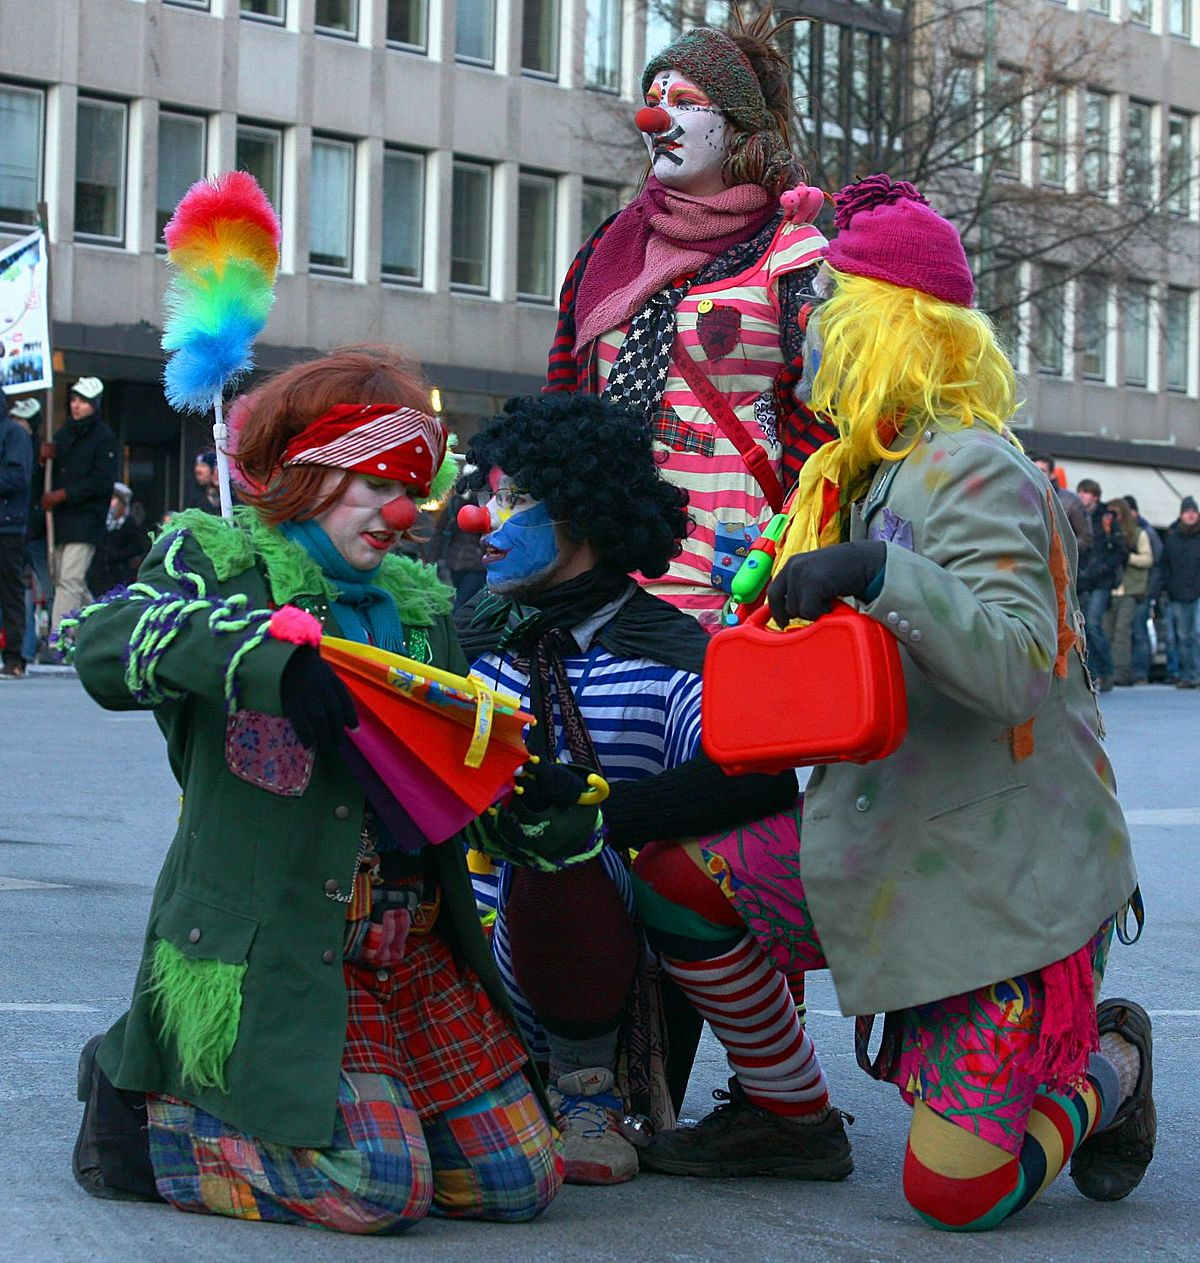 Four clowns kneel and stand on the street at a protest